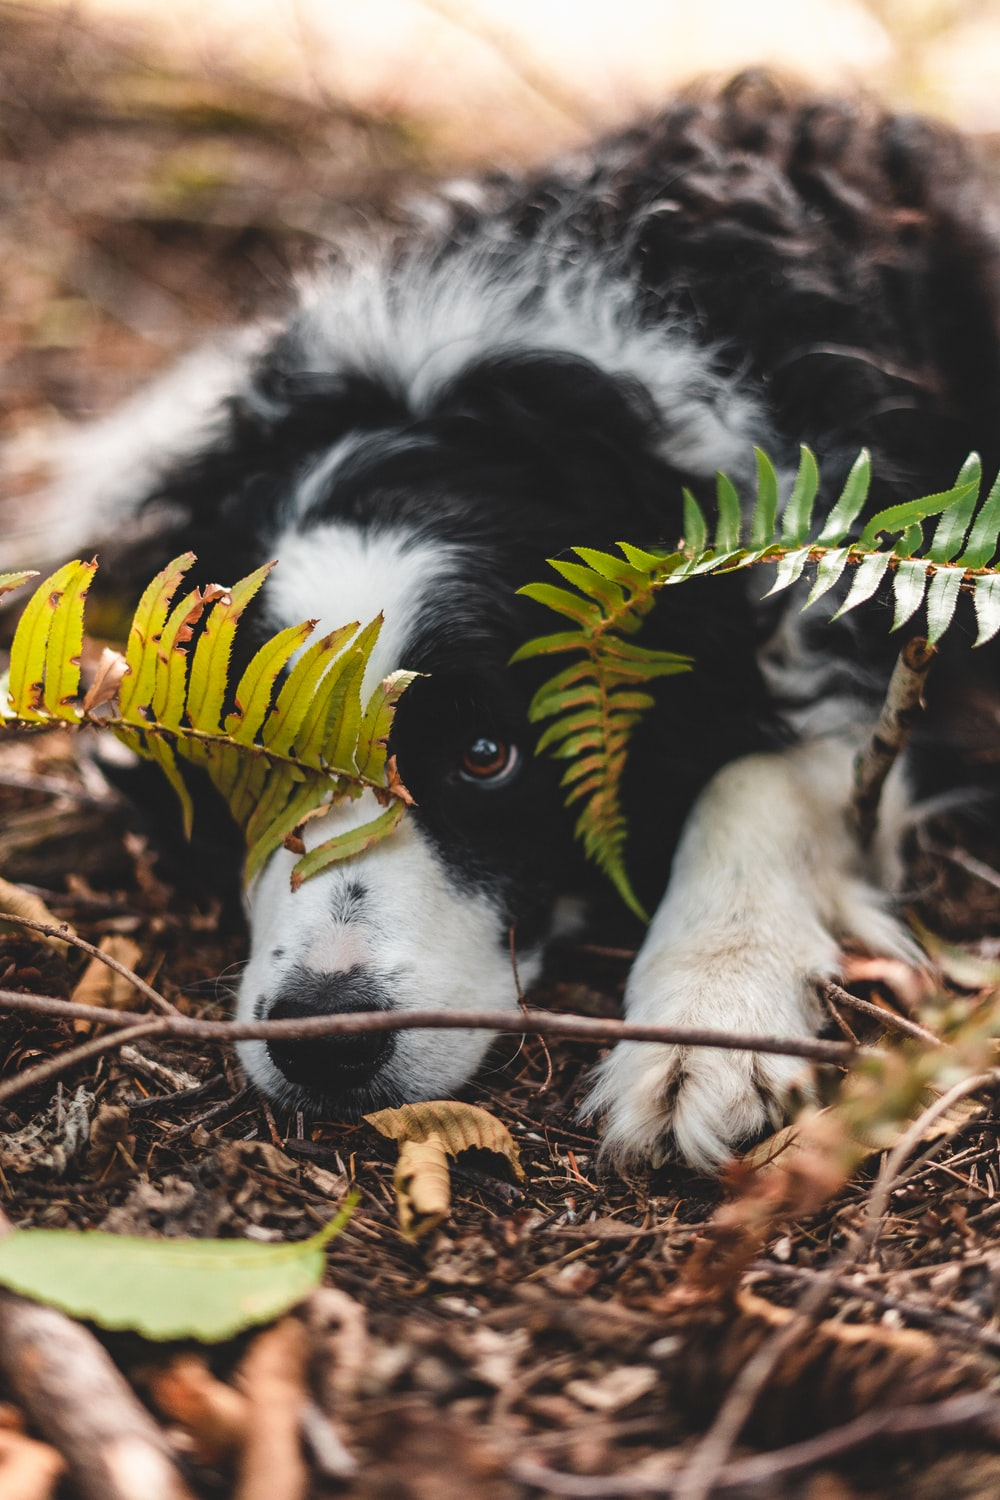 black and white border collie puppy biting yellow and brown plant